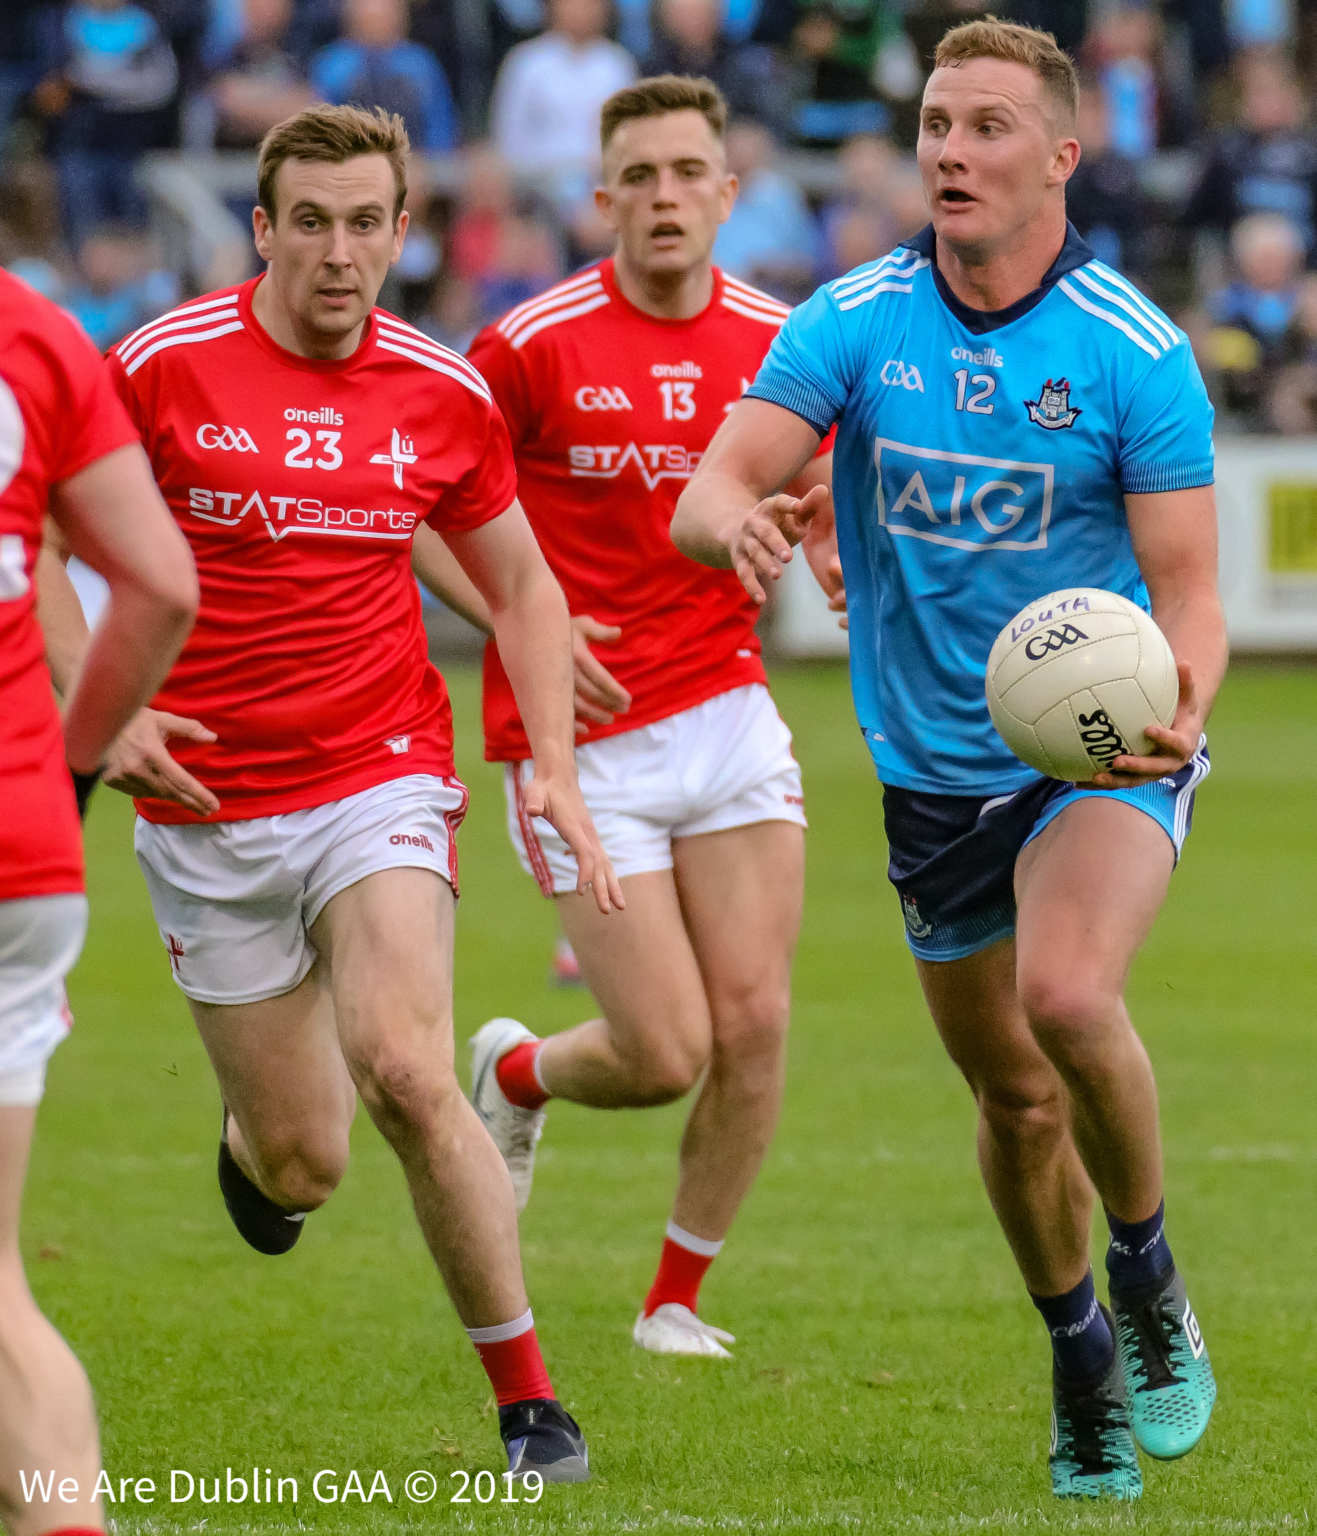 Dublins Ciaran Kilkenny in action against Louth in this years Leinster Championship, the draw for the 2020 Leinster championship takes place this Monday.